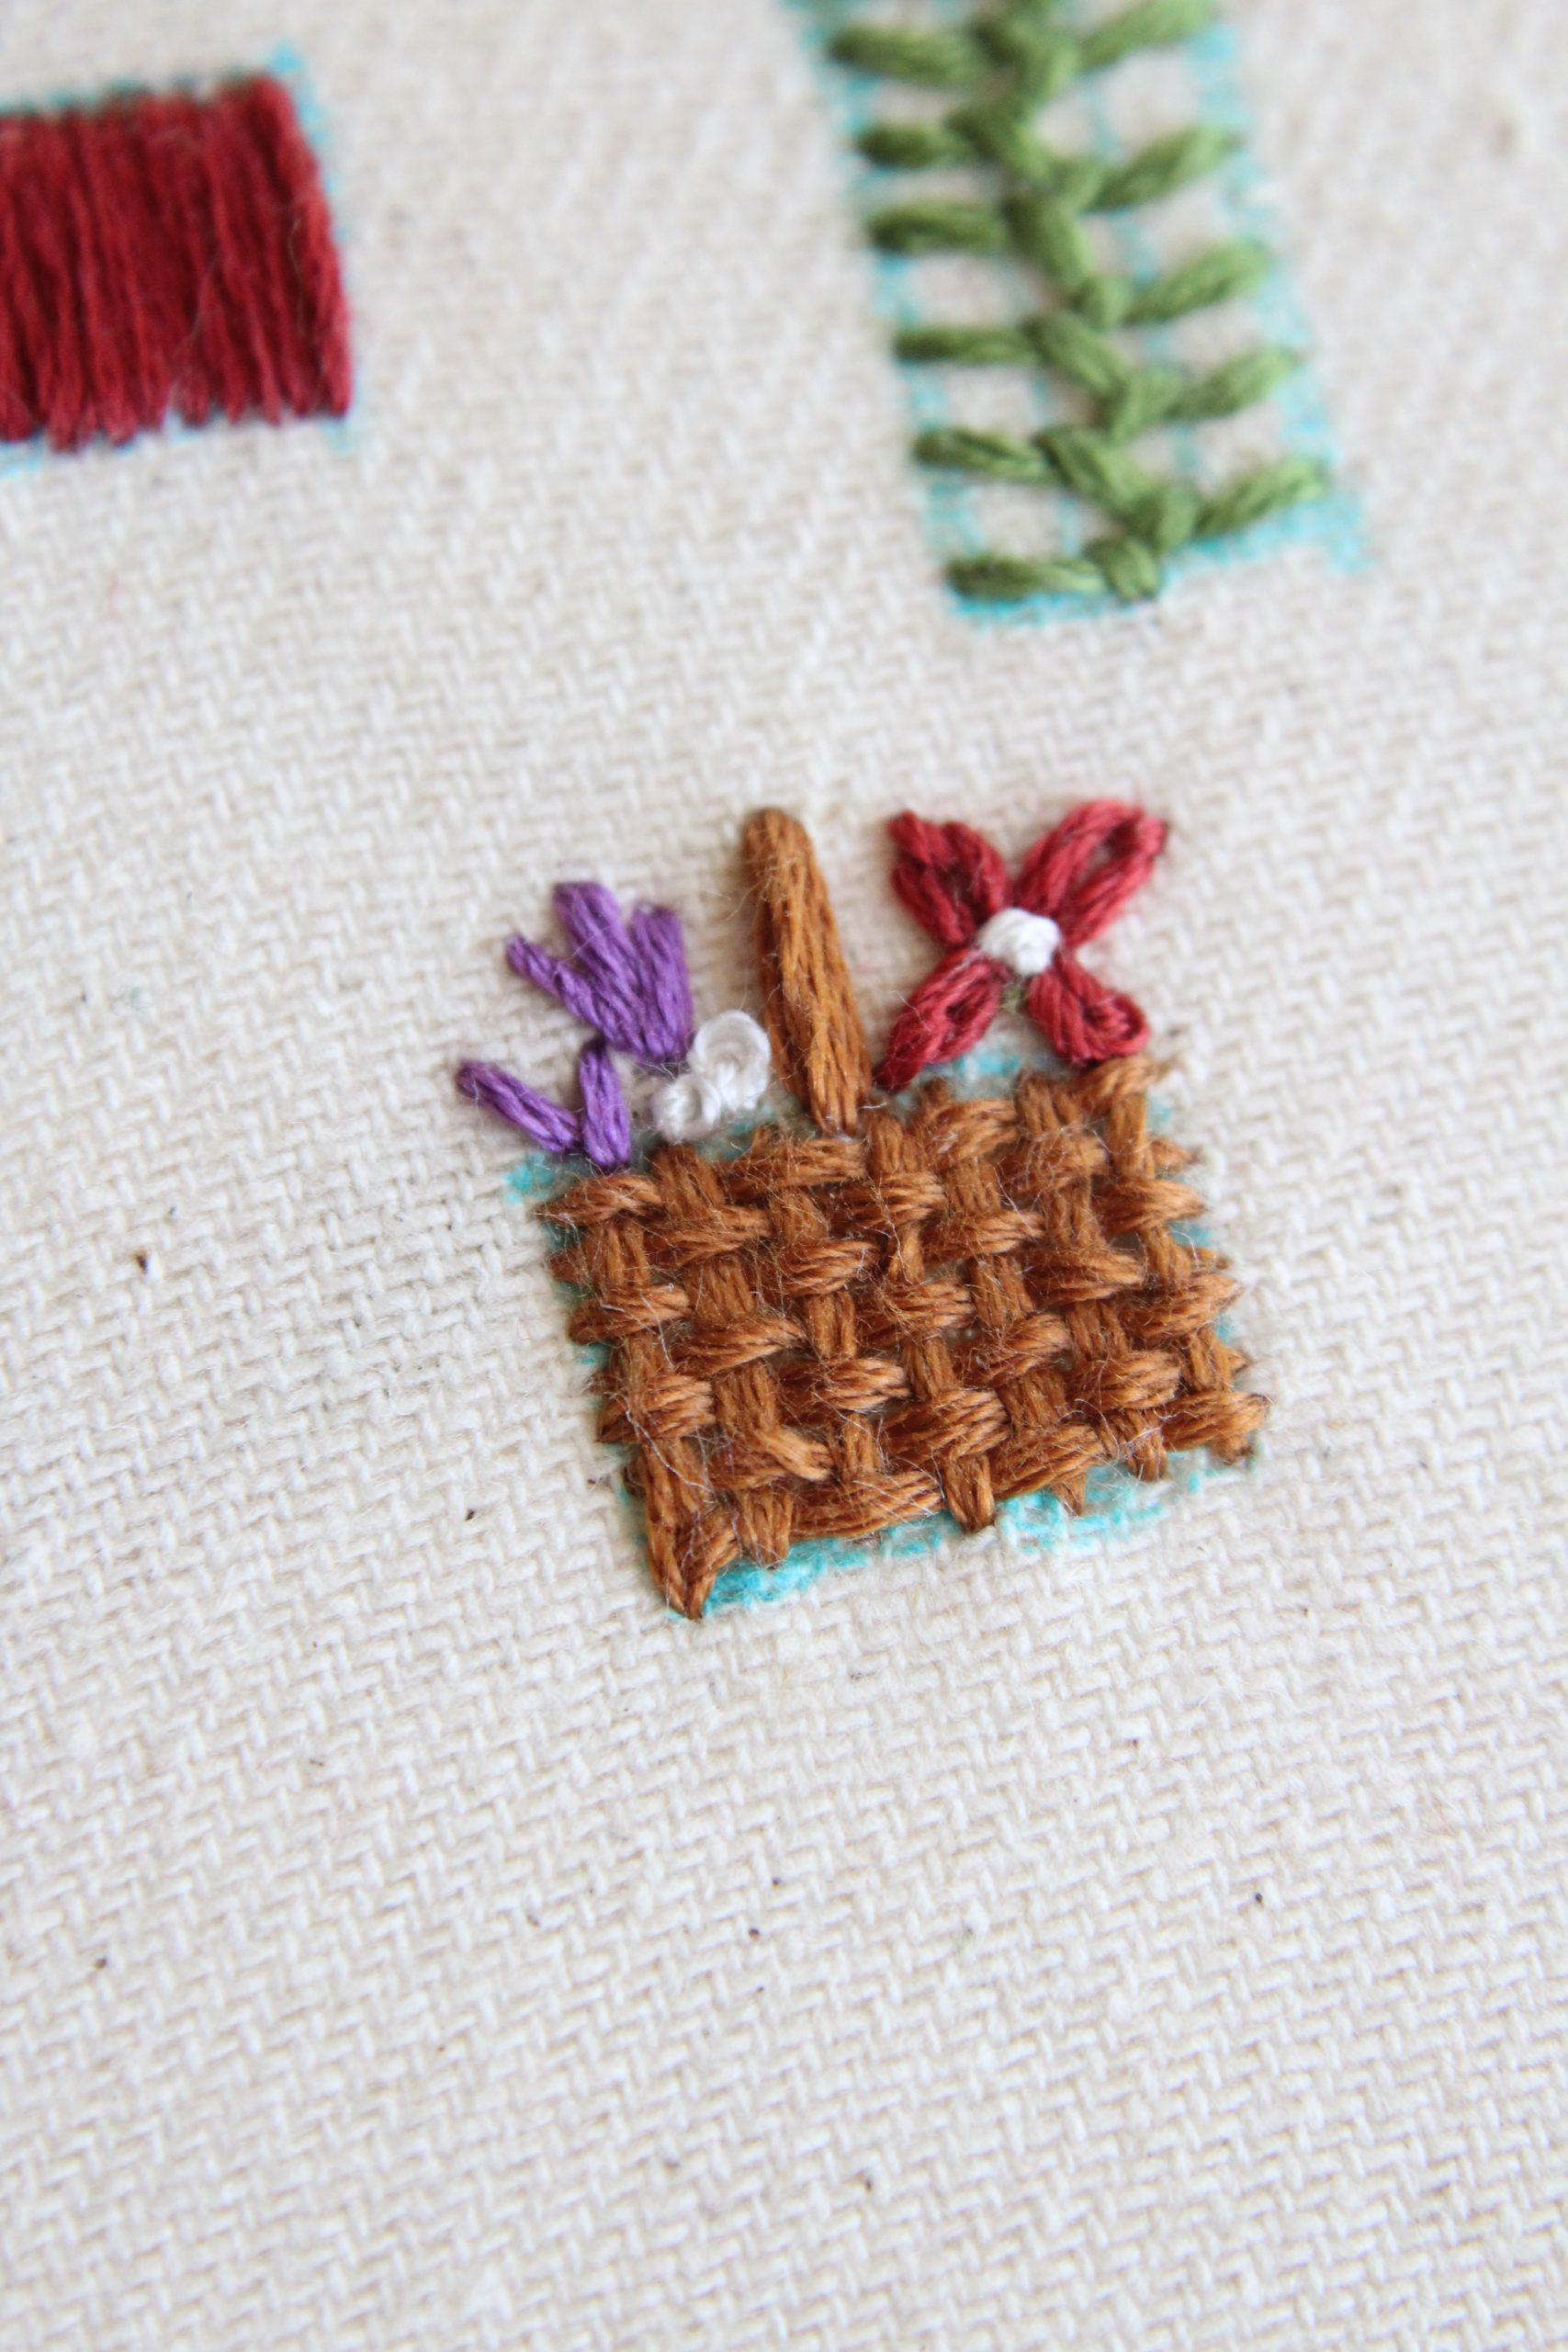 Basket Weave Embroidery Stitch + Basket Embroidery Tutorial